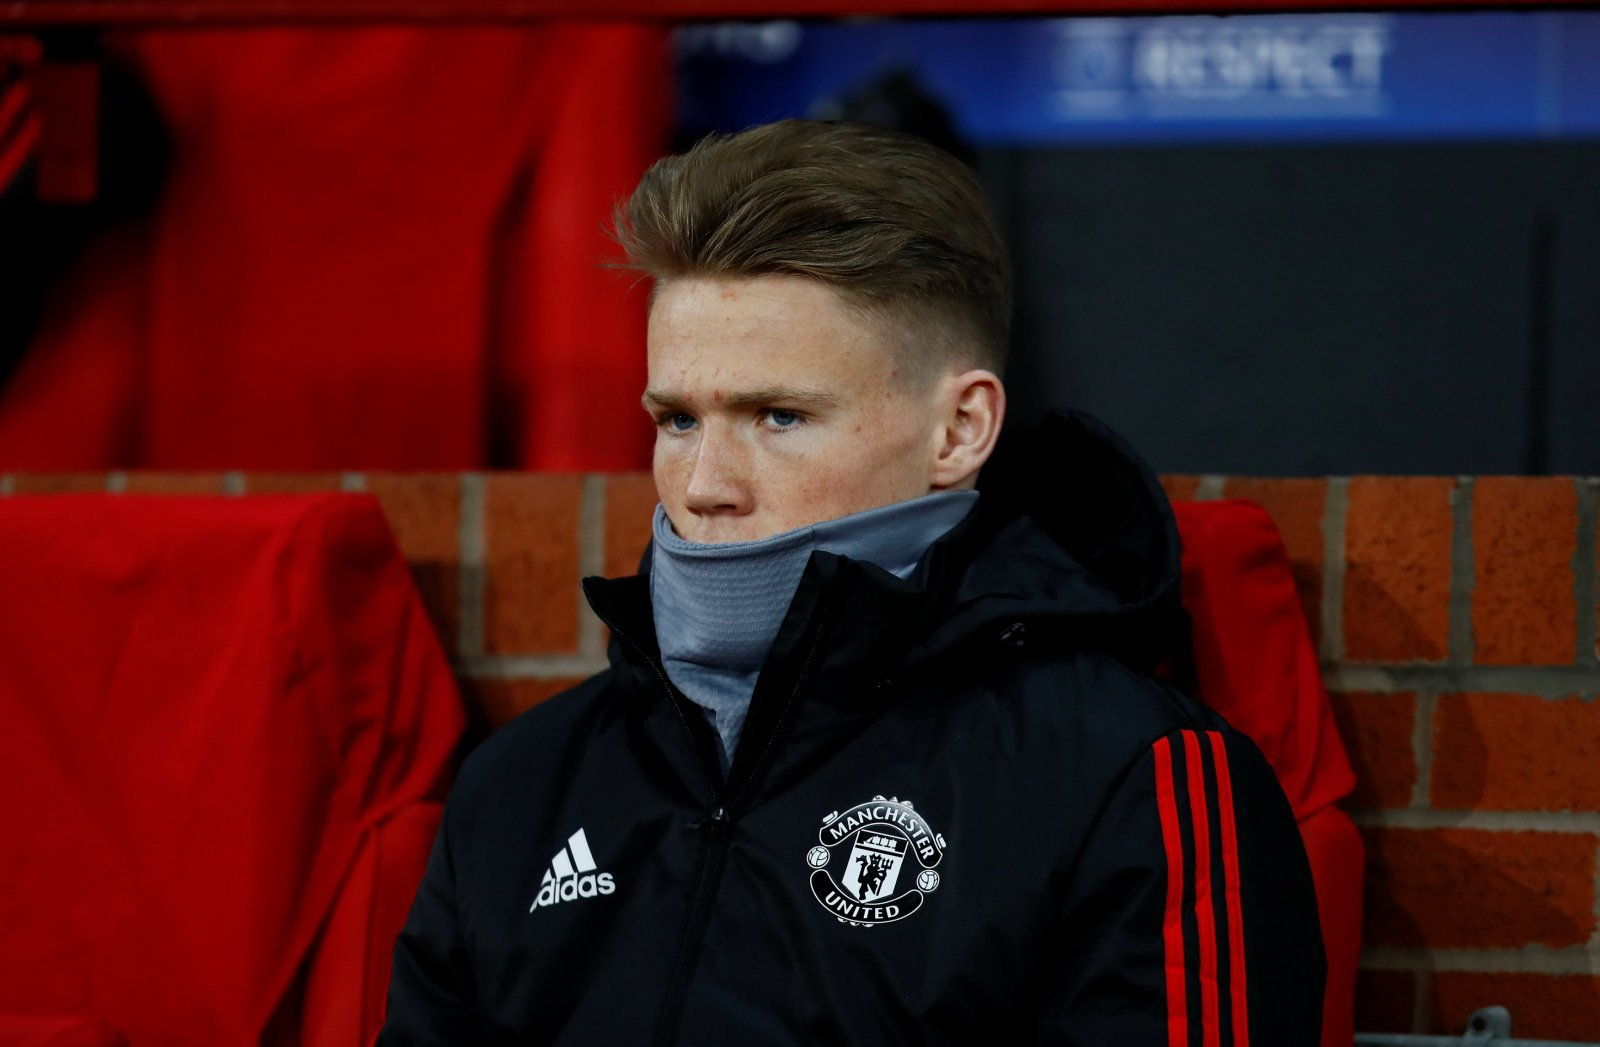 Scott McTominay would be a addition of intent from Rangers